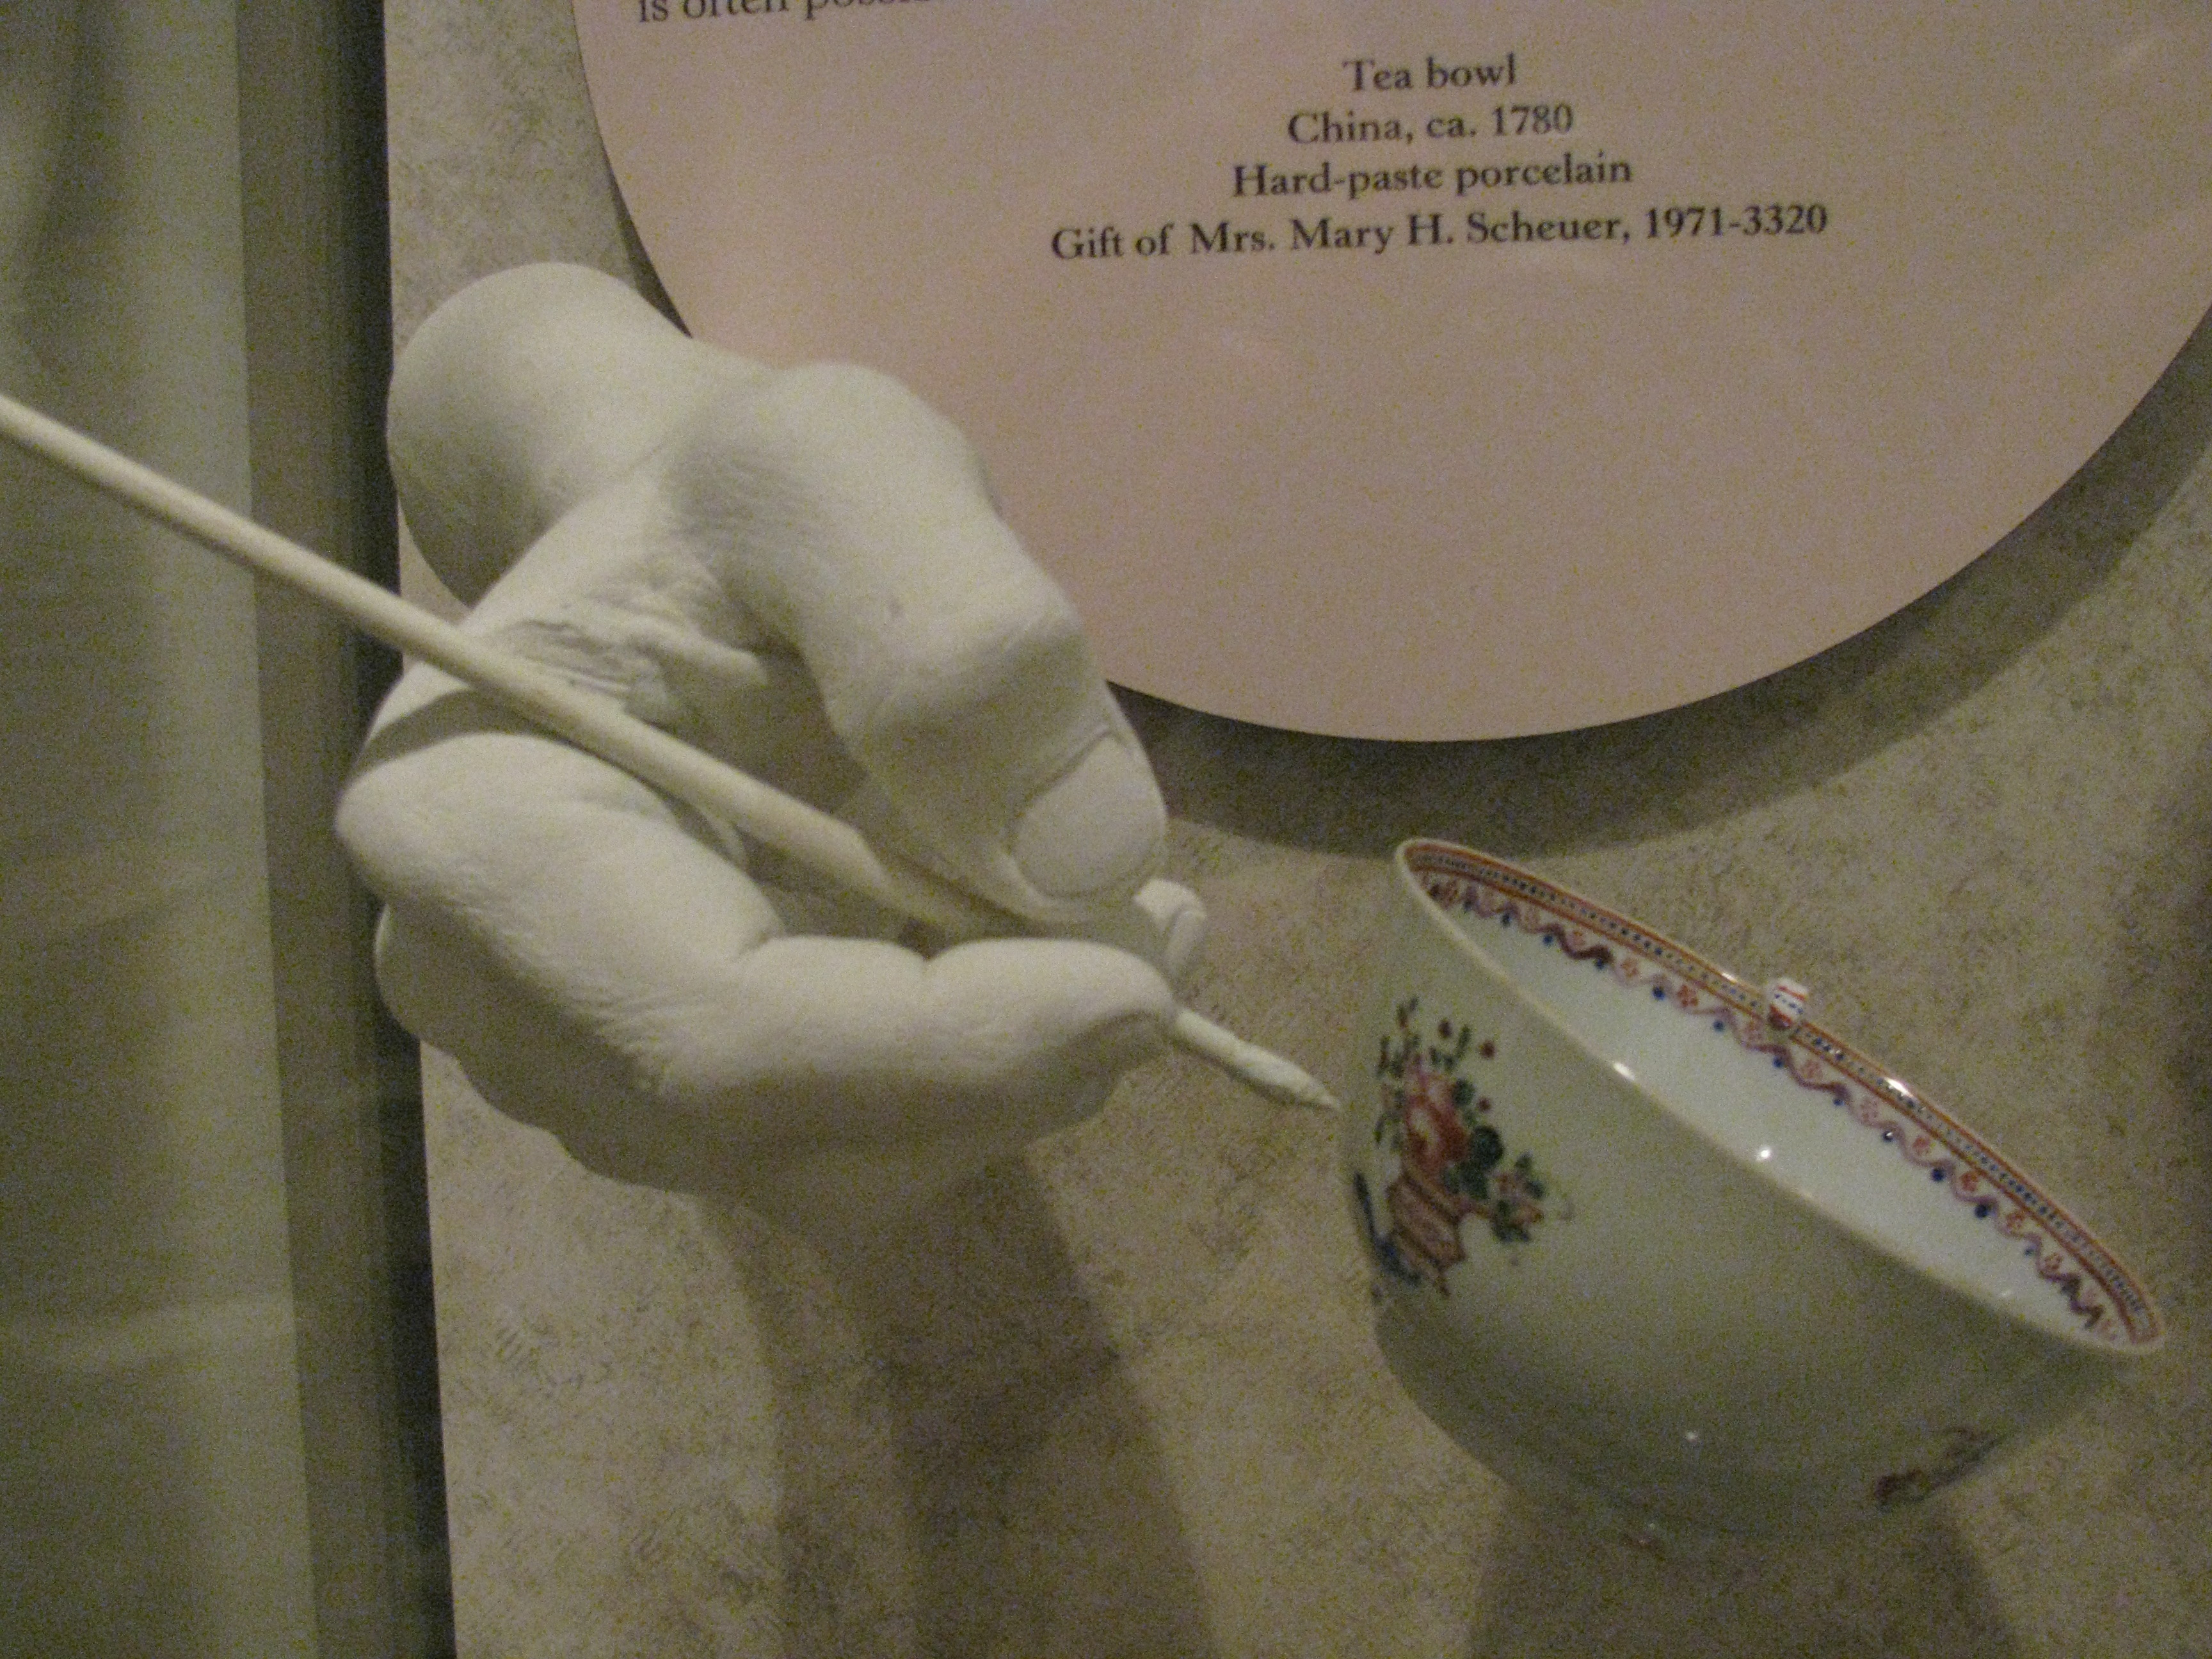 Photo of Porcelain Cup Taken at Dewitt Wallace Museum